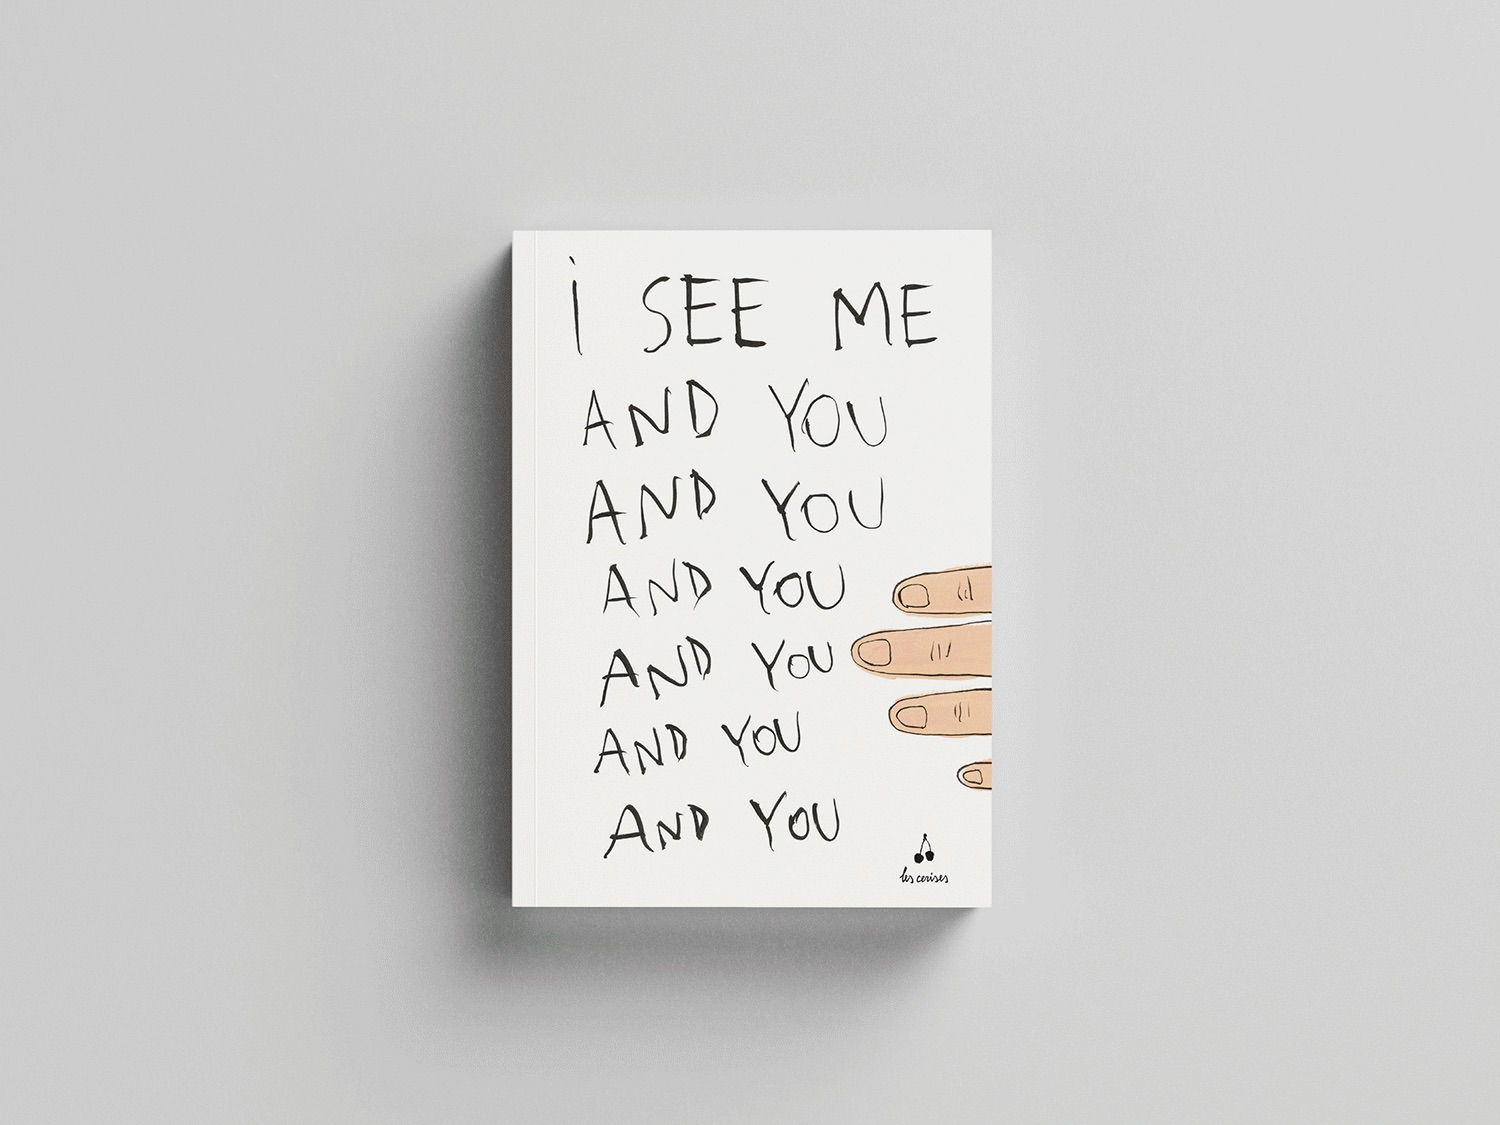 Adelaide Cioni - I see me. And you and you and you